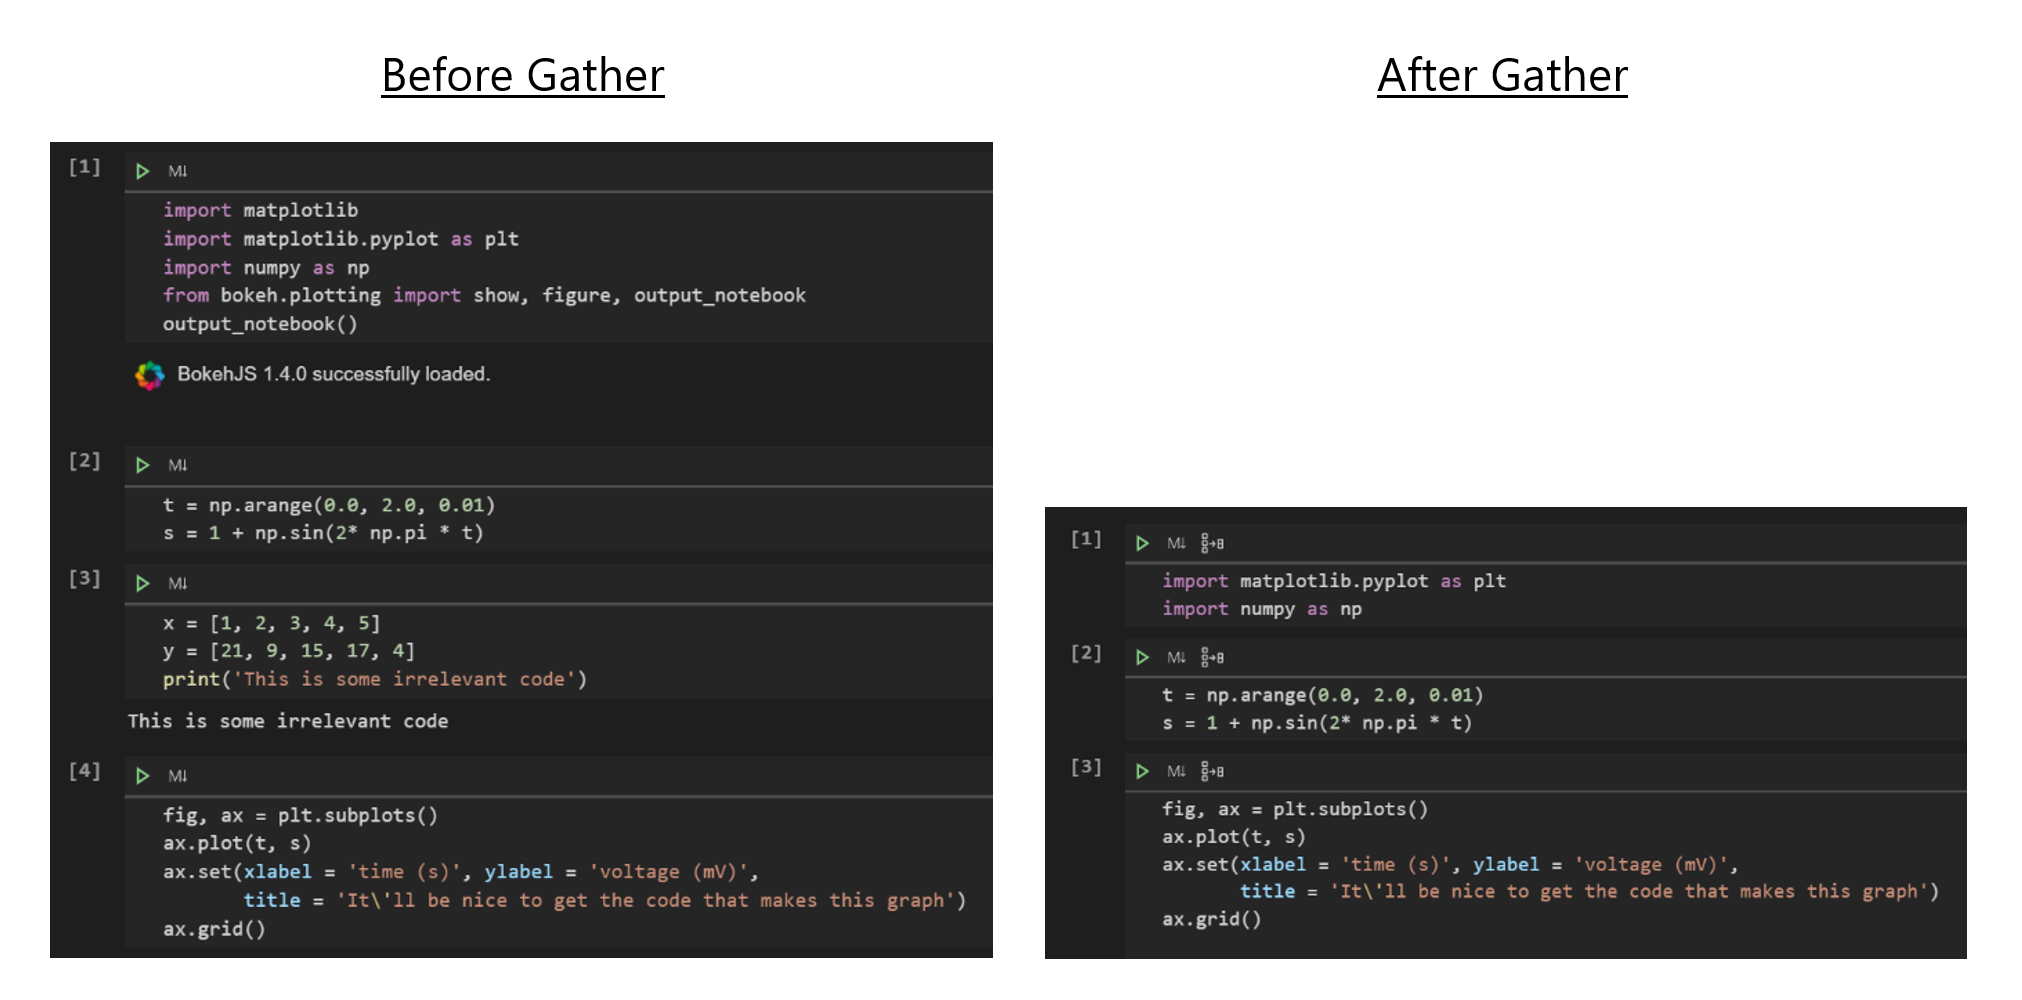 Code comparison before and after the use of Gather.